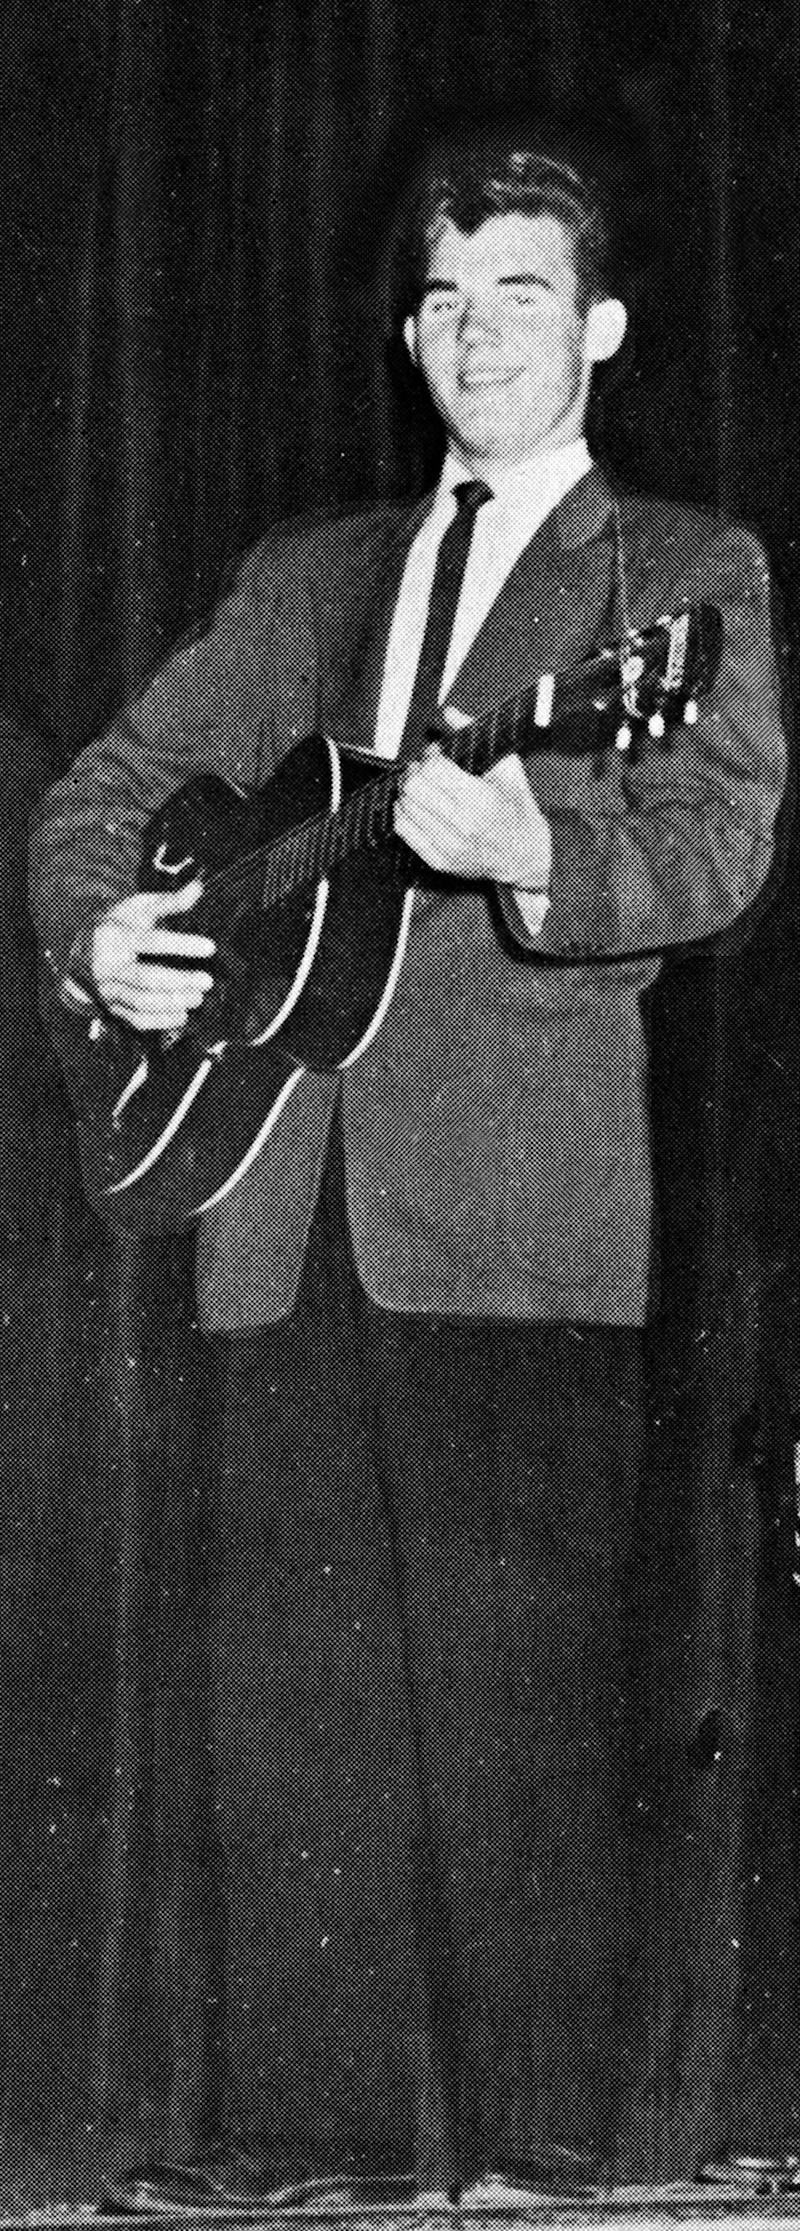 Kenny Rogers performing in a talent show during his senior year at Jefferson Davis High School in Houston, Tex.; 1956